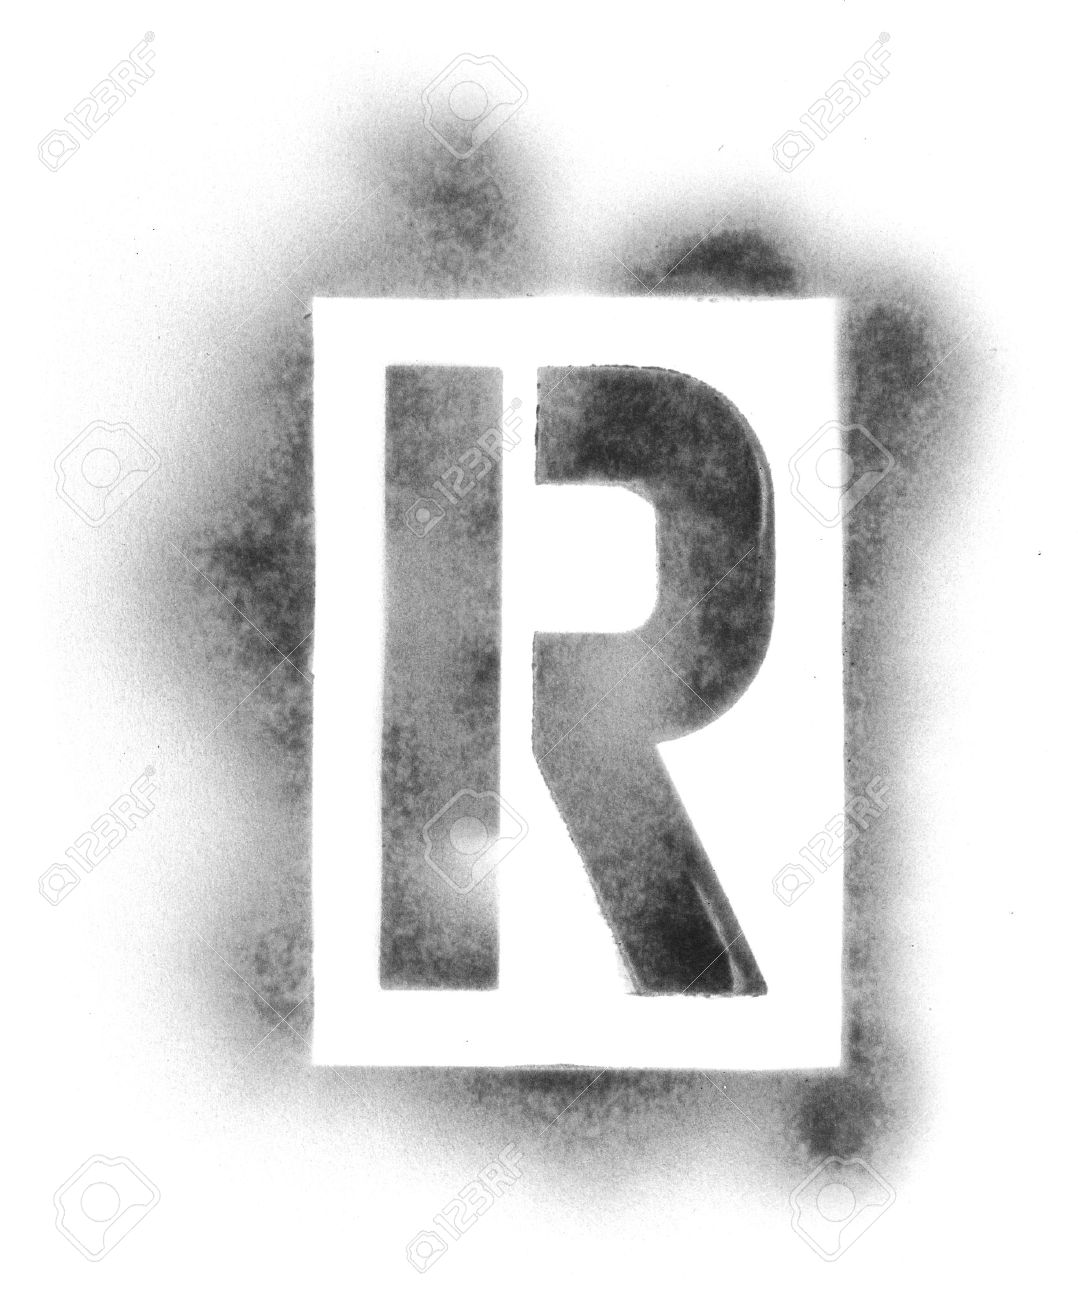 stencil letters in spray paint stock photo 5041358